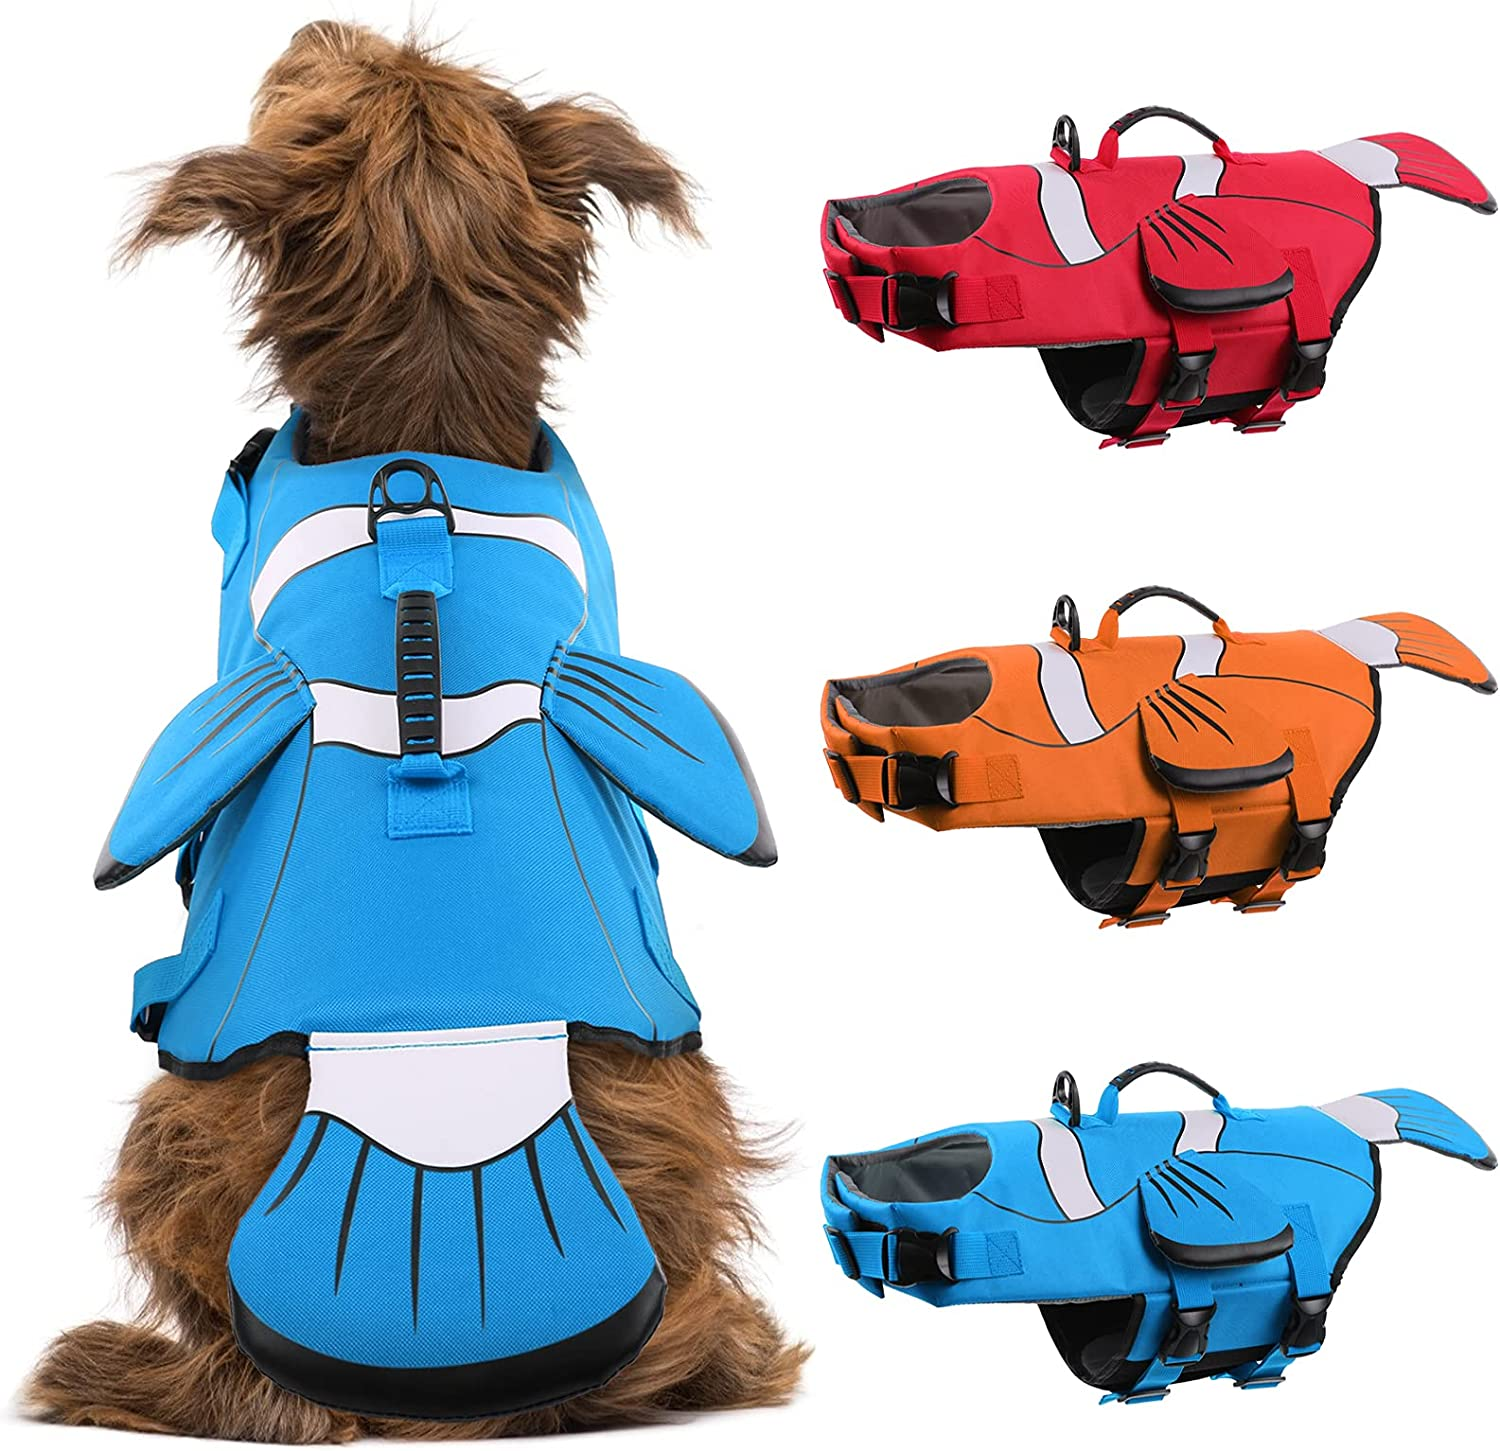 DENTRUN Dog Life Jacket Safety for Max 67% OFF and trust Adjustable Swimming Pu Vests